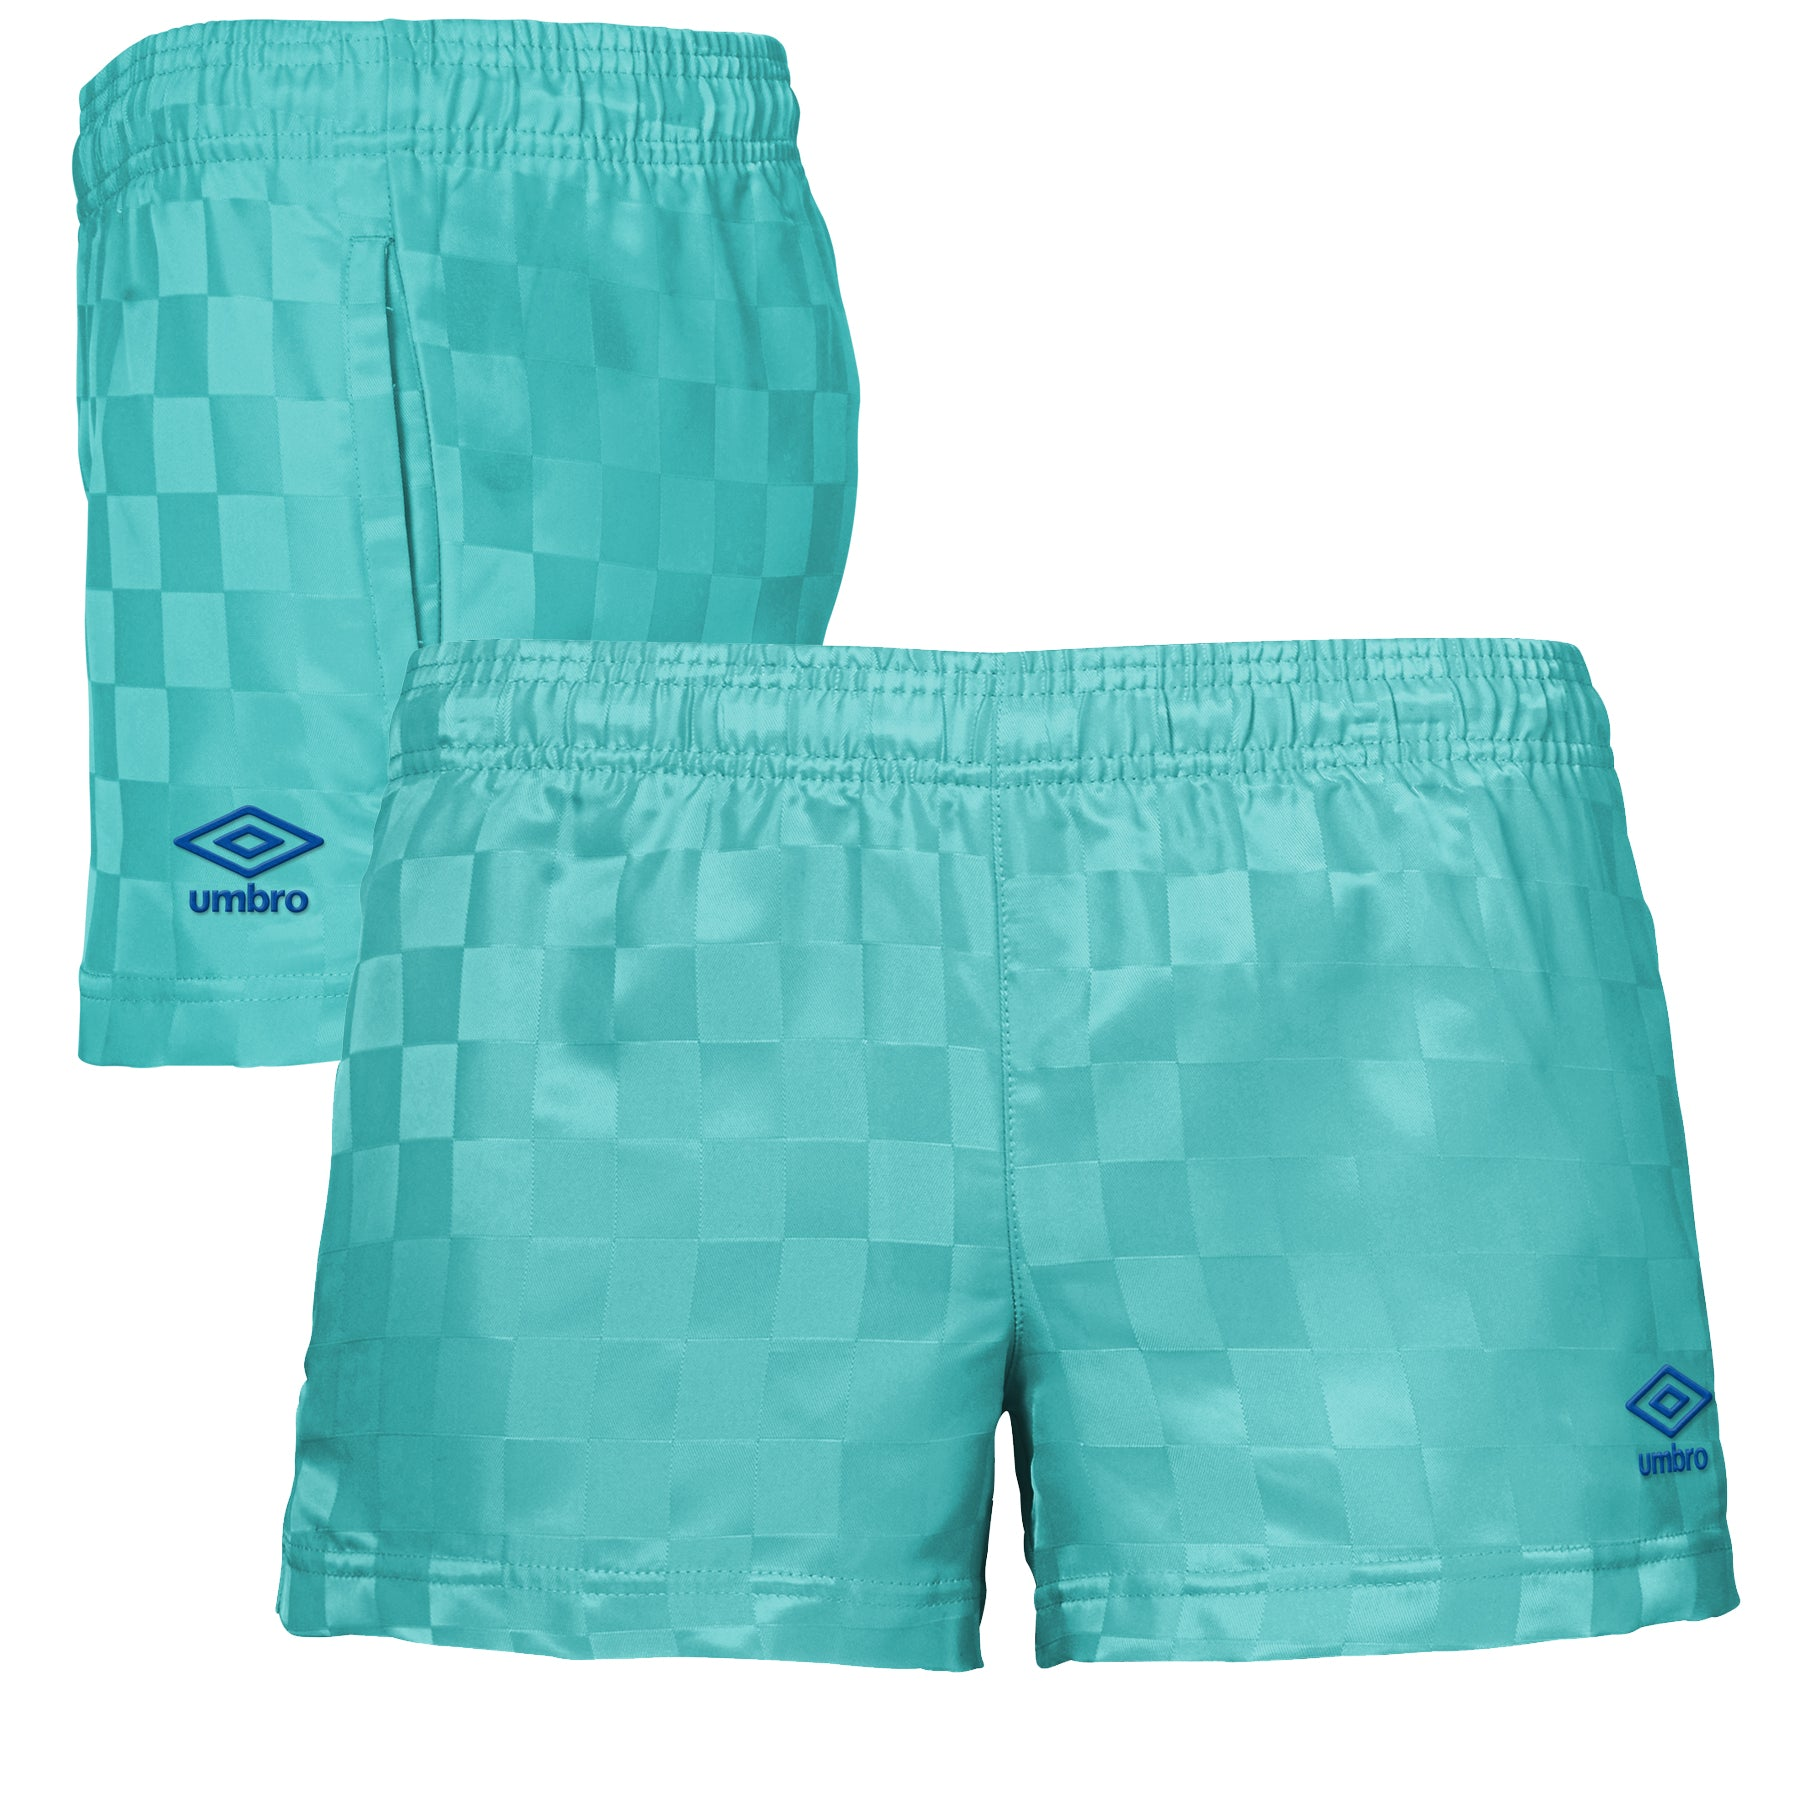 Umbro Womens Checkboard Short